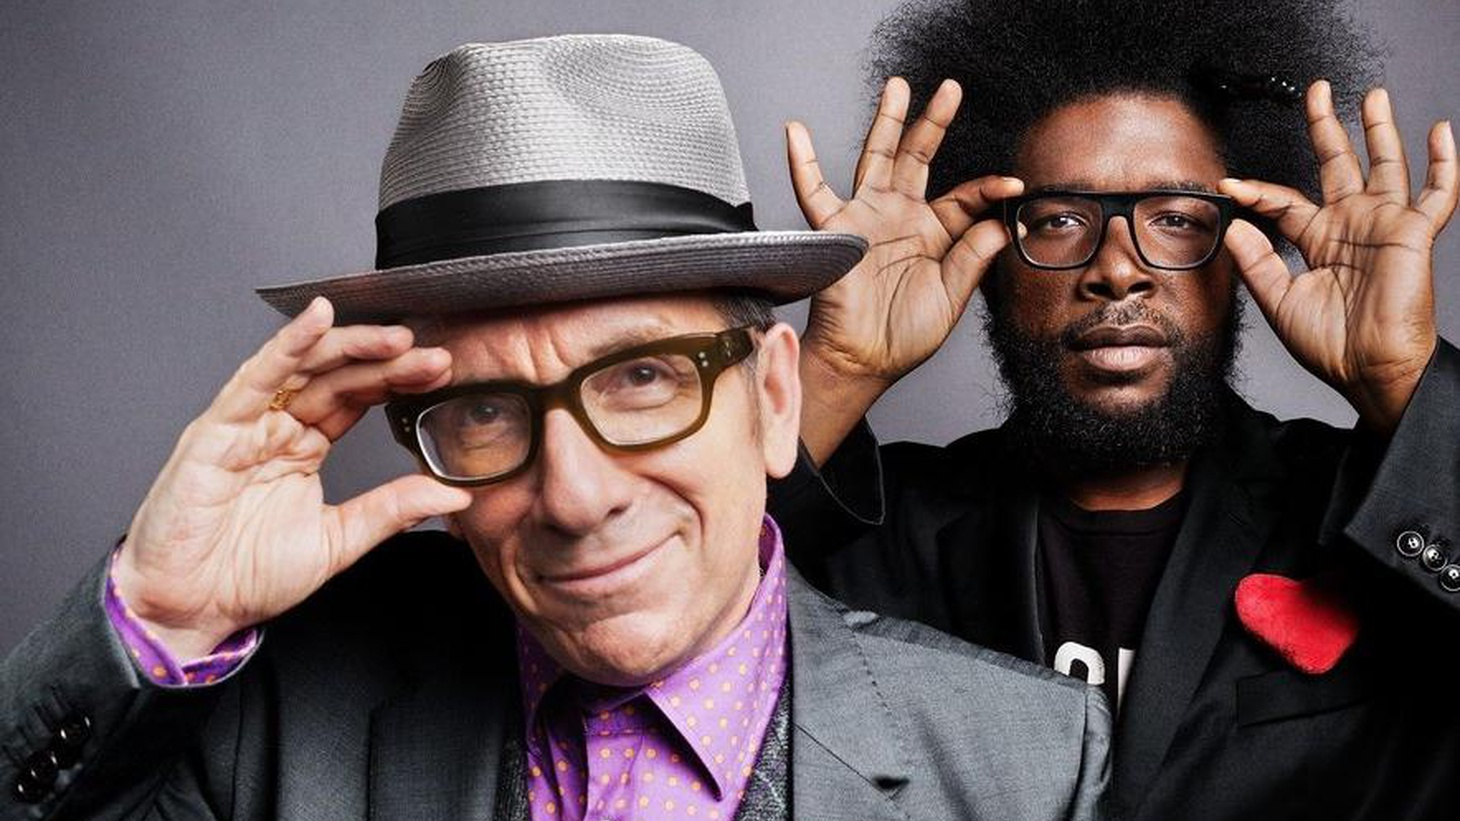 Wise Up Ghost is Costello's collaboration with The Roots, hip-hop's most admired live act and a recording venture as conceptually adventurous as Costello himself.